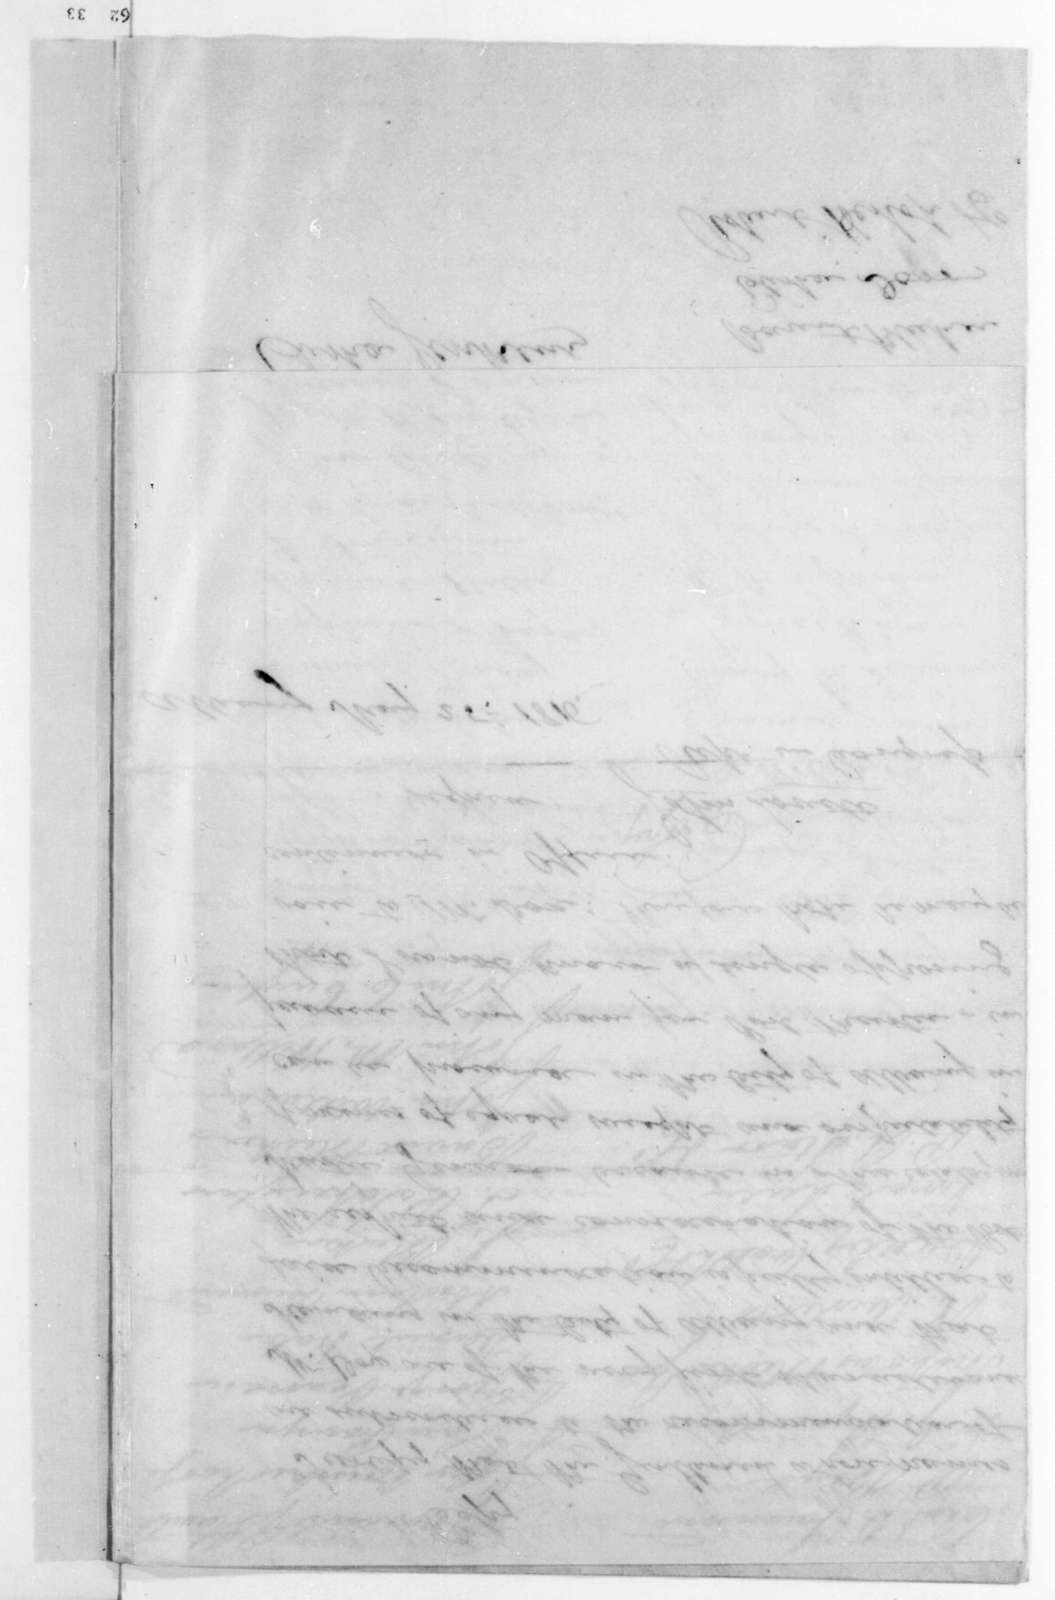 Gerrit Dox to James Madison, May 28, 1816. Includes a petition from Citizens of Albany, NY to Return J. Meigs for G. Dox to be local Post Master and a certification from John Lovett.